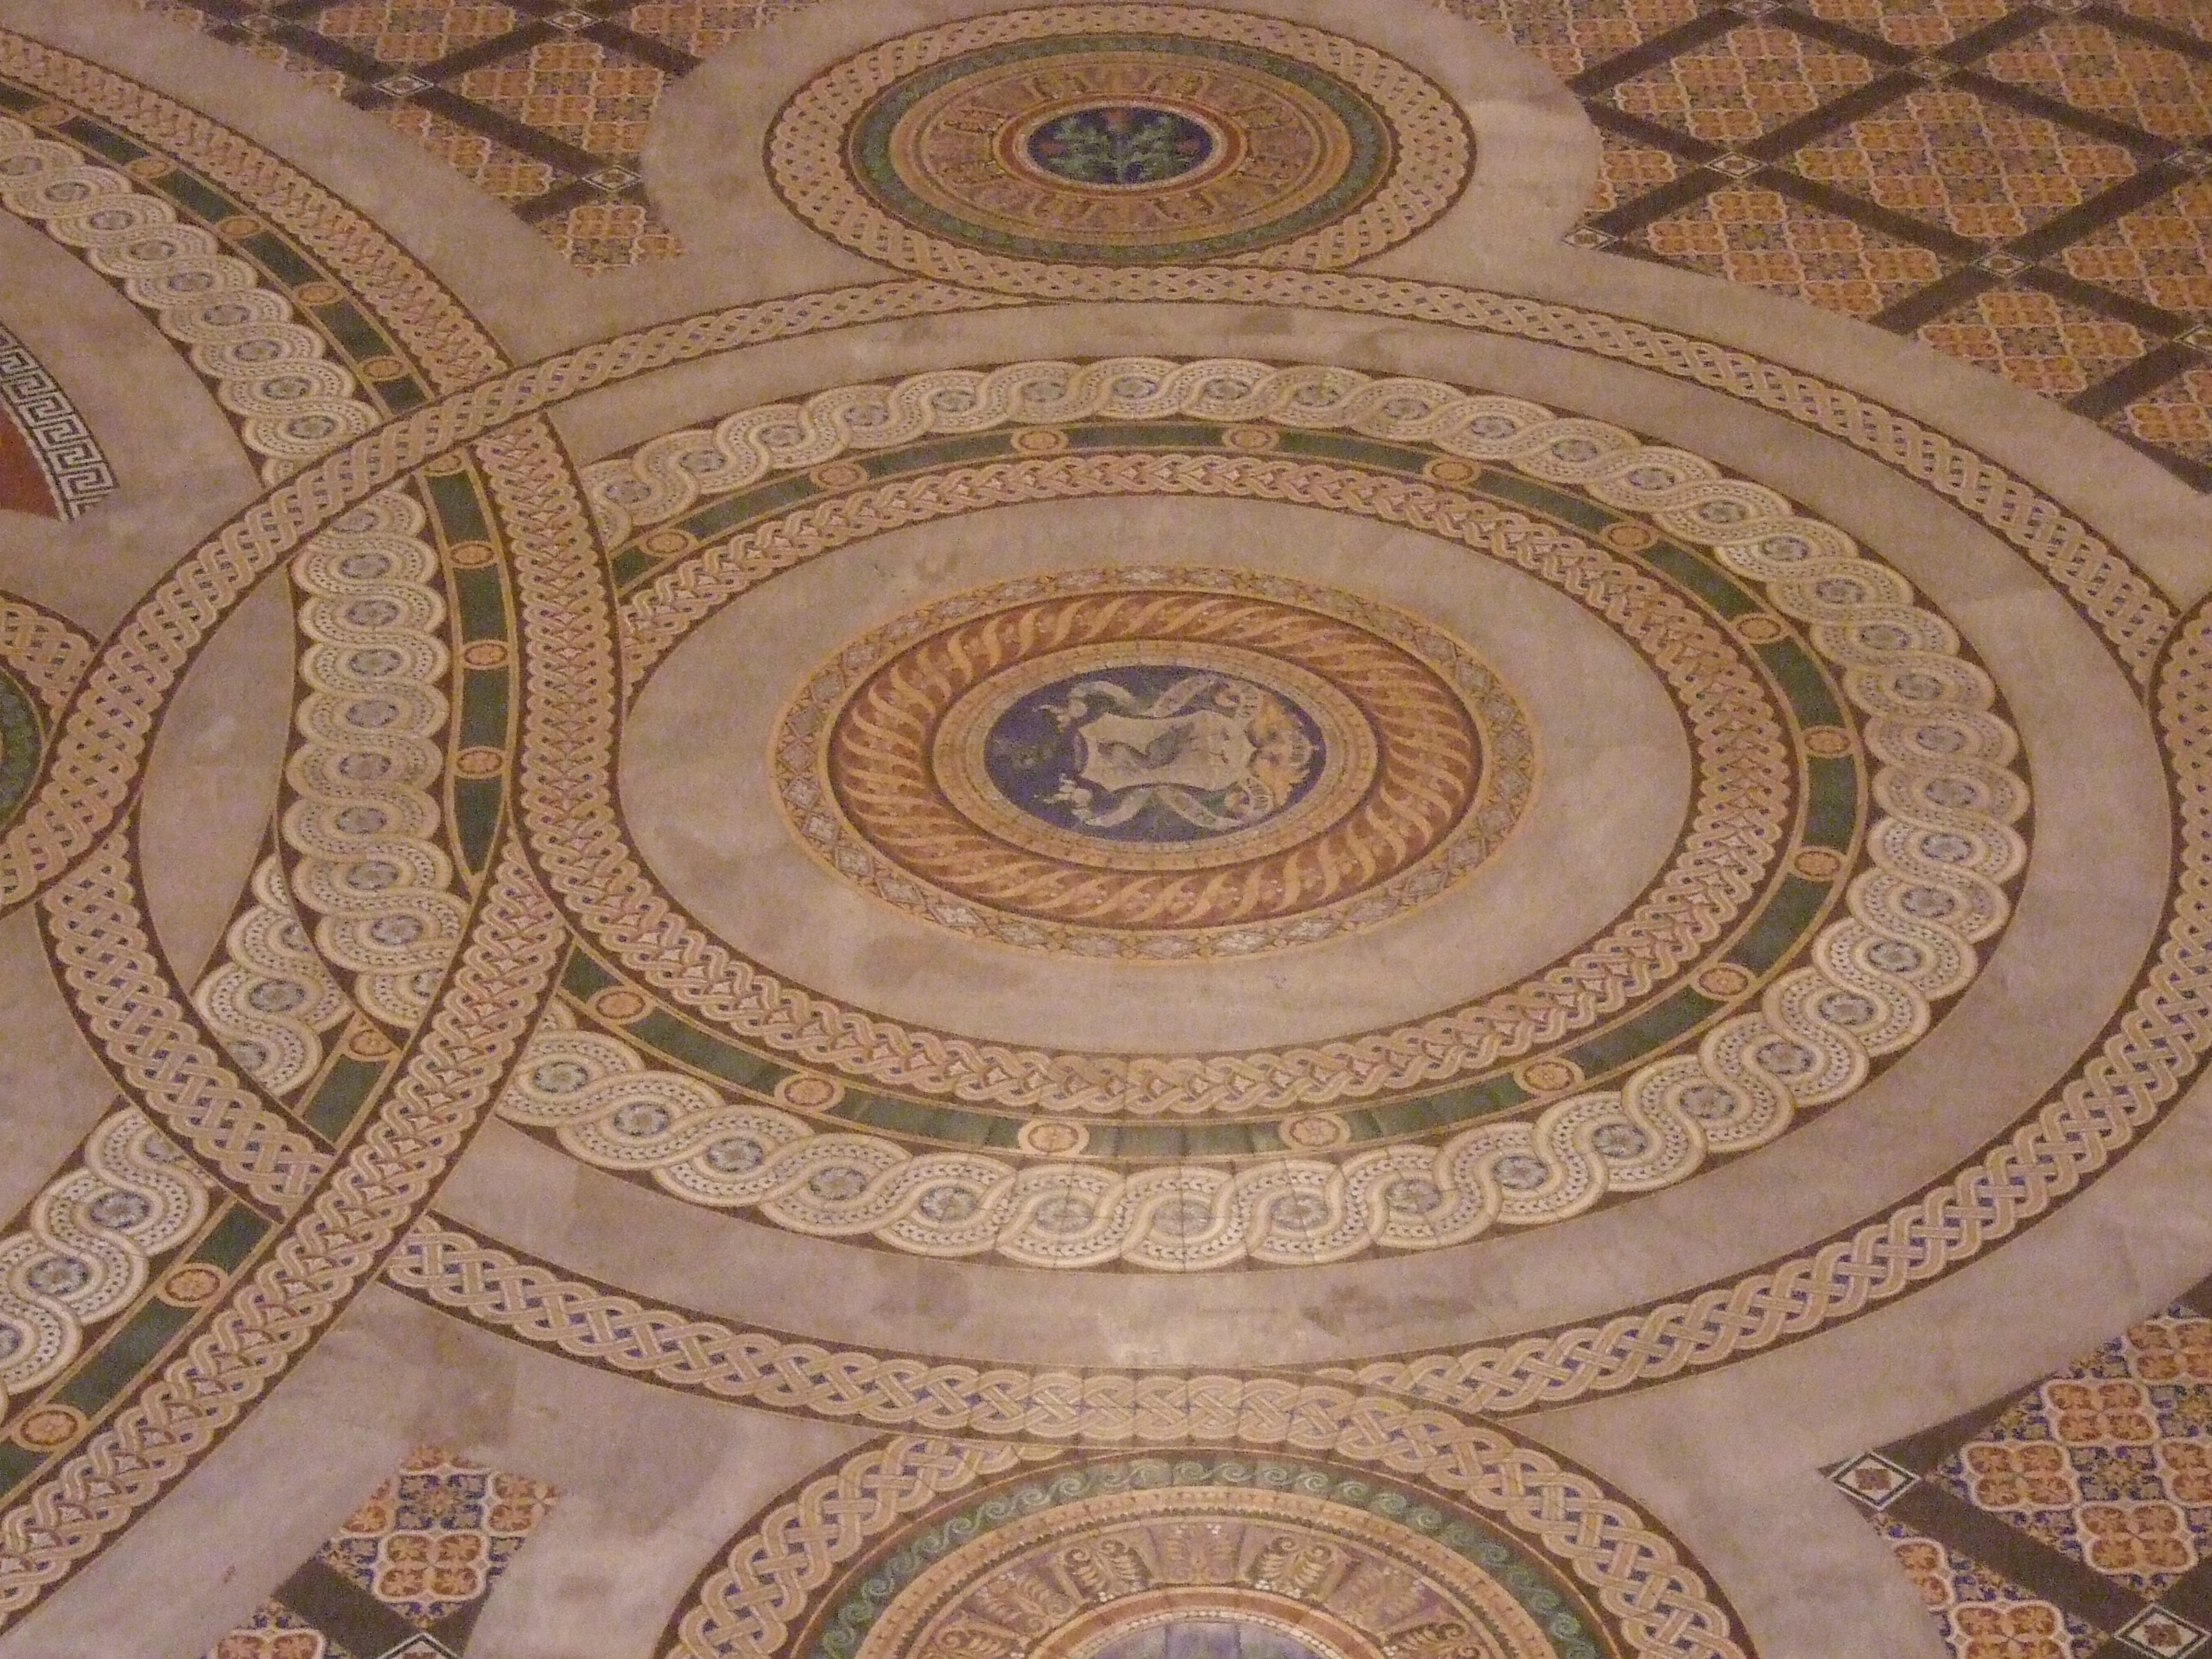 Http Commons Wikimedia Org Wiki File Minton Floor St George S Hall Jpg